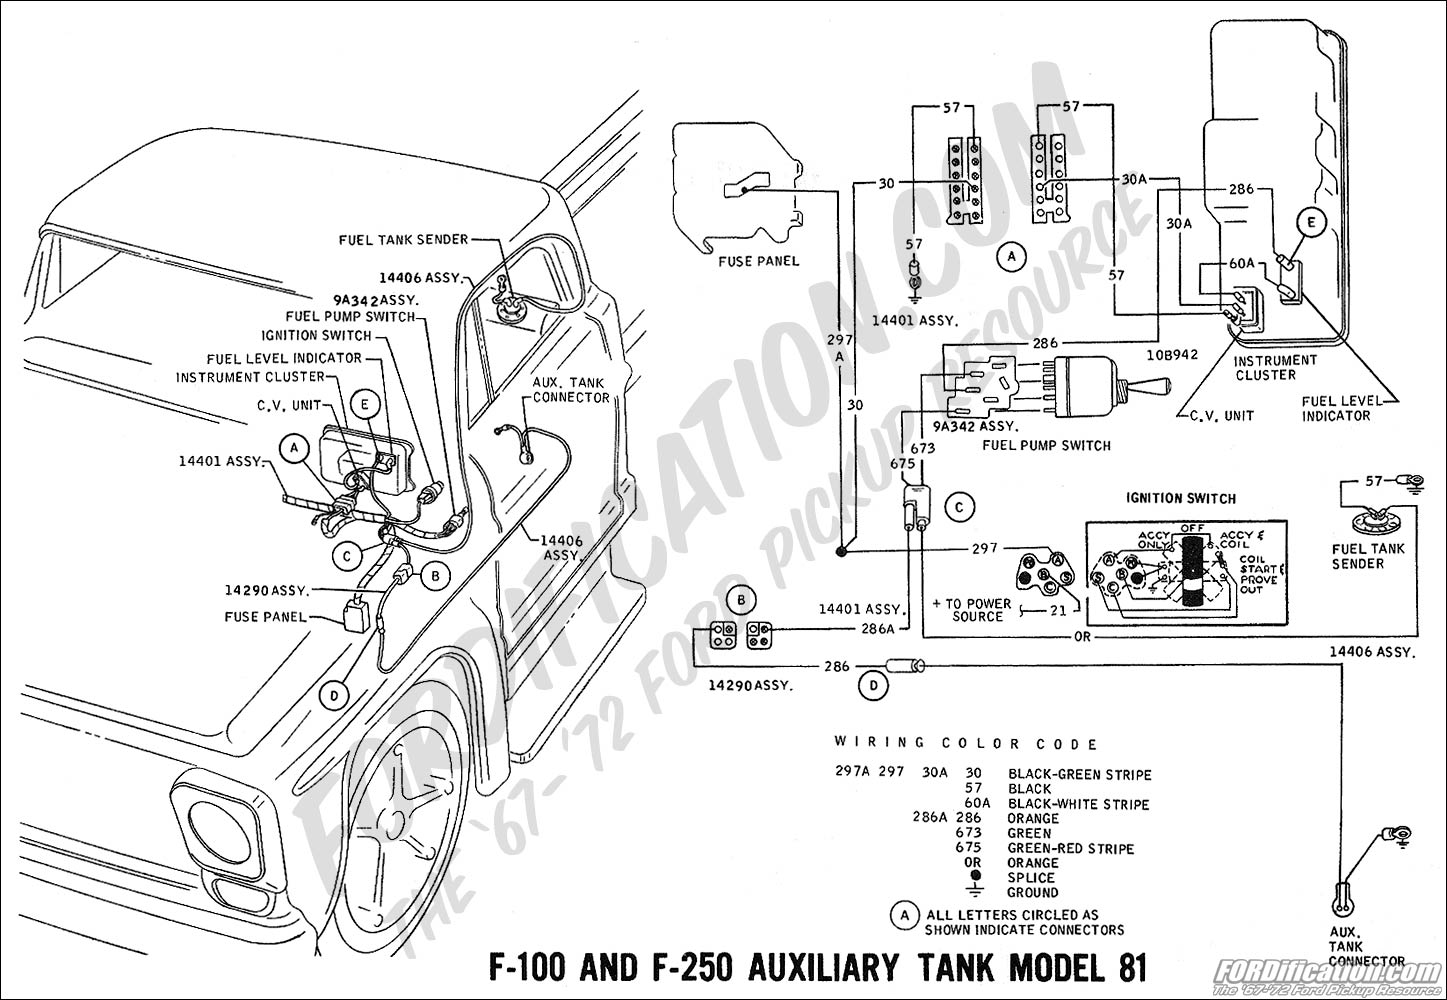 wiring_69aux fuel 69 f100 wiring diagram 1973 ford f100 wiring diagram \u2022 wiring Ford E-350 Fuse Box Diagram at panicattacktreatment.co